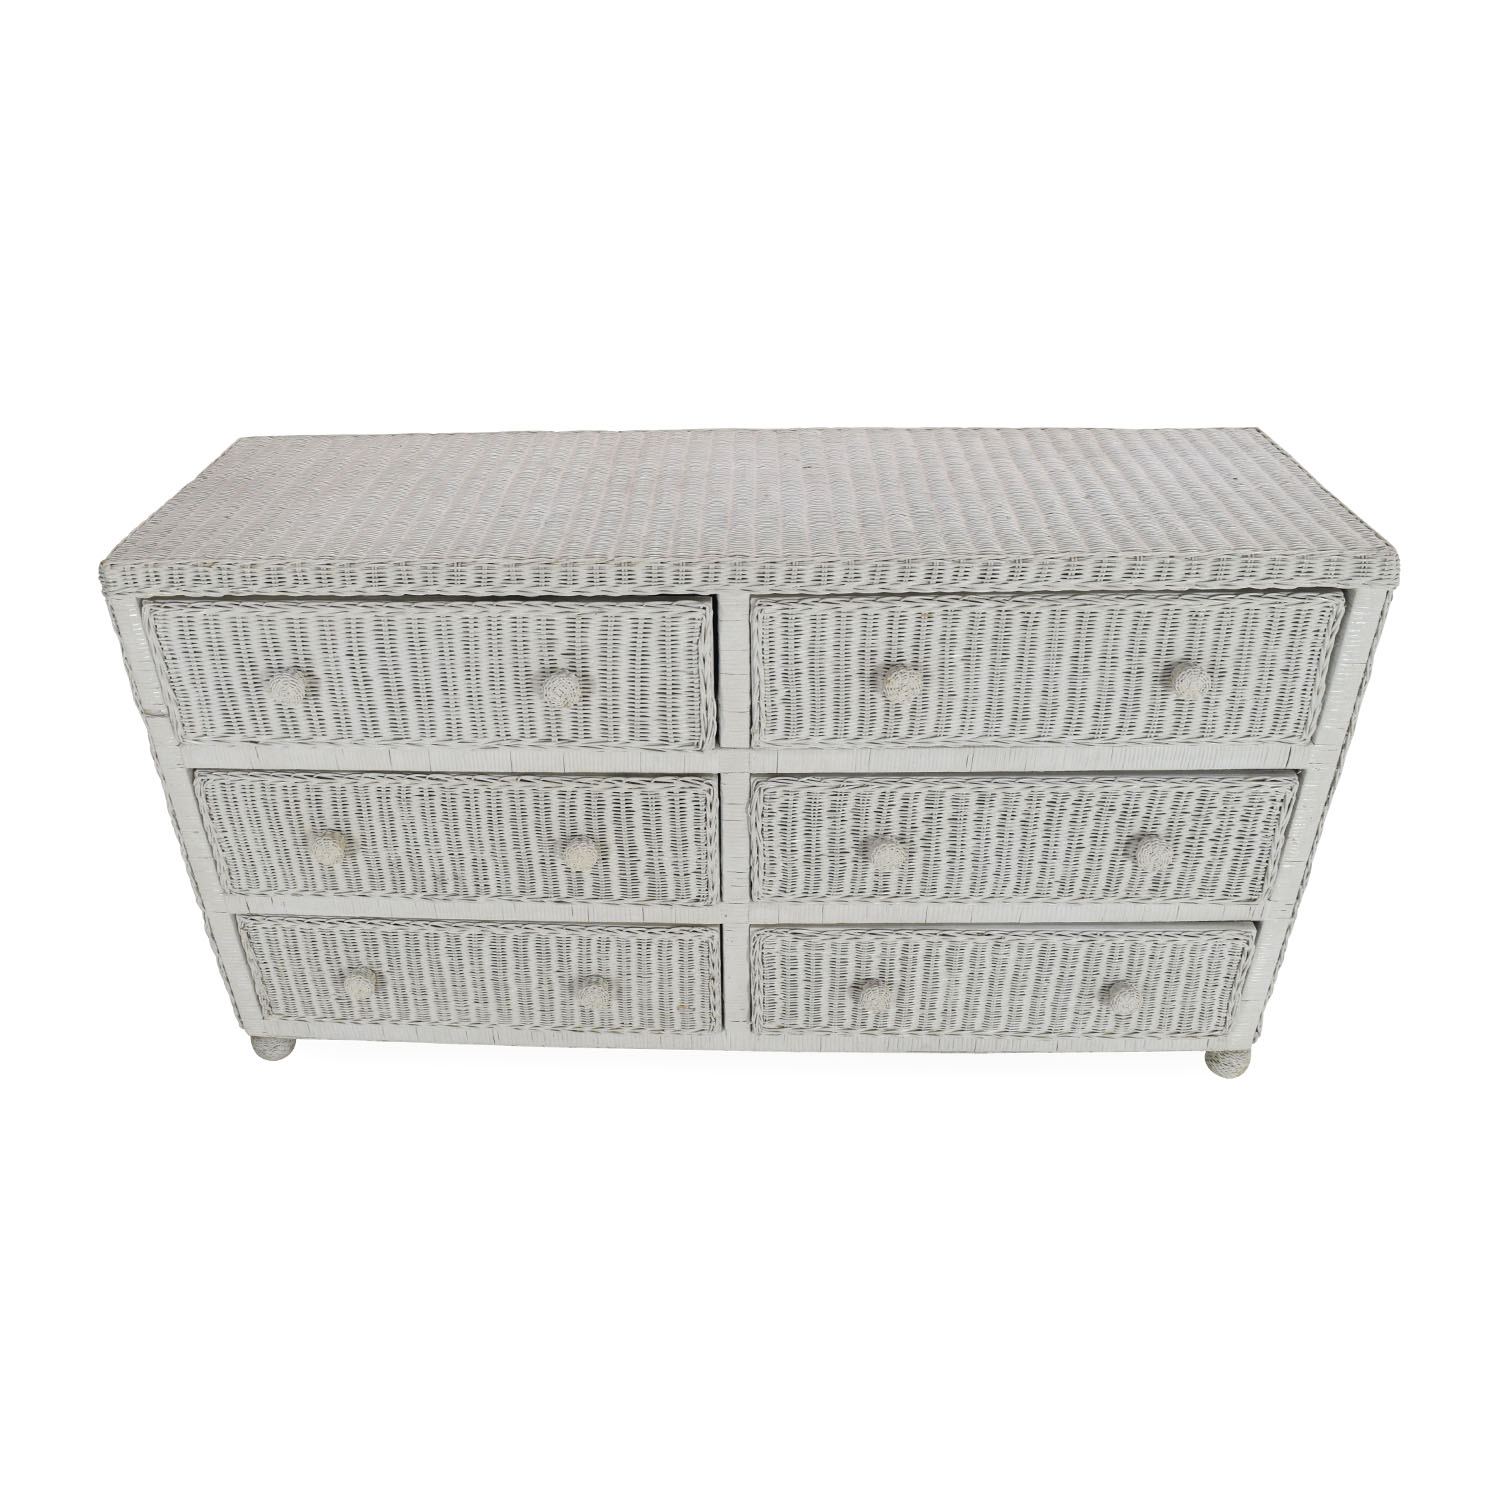 Elana Mar White Wicker Dresser sale